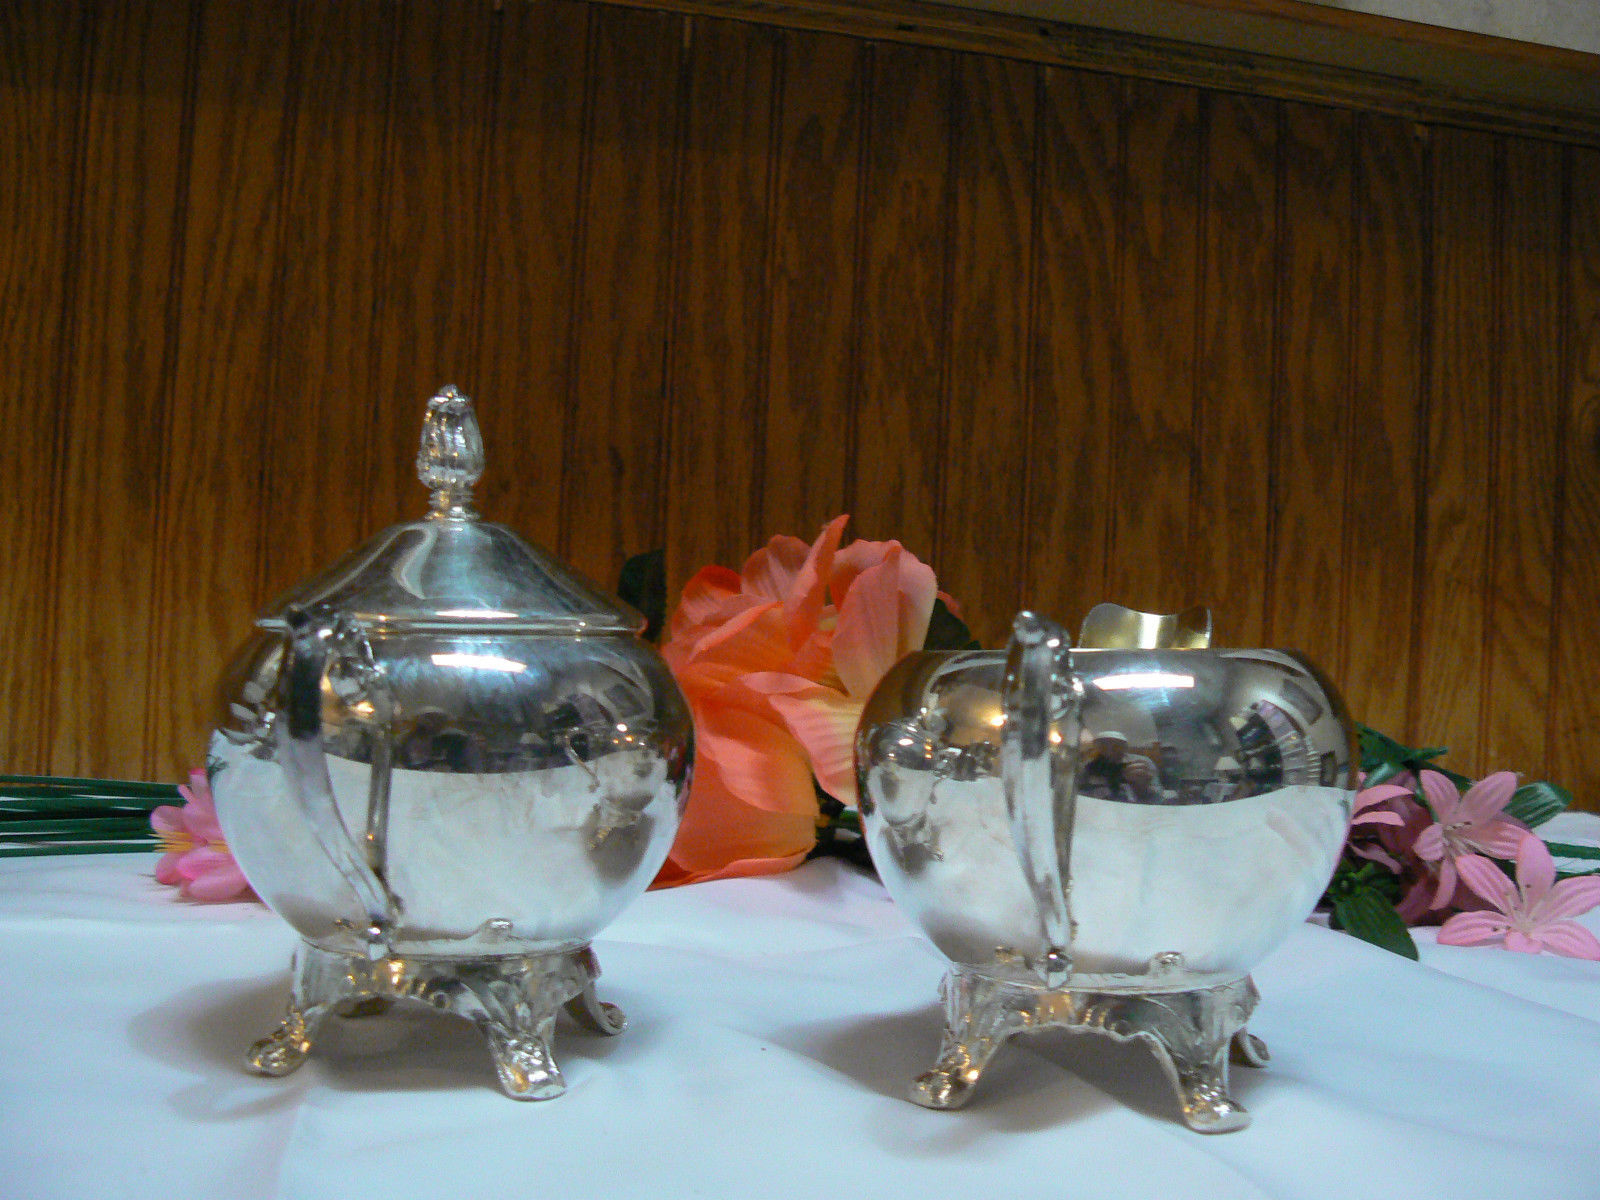 Antique/Vintage F.B. Rogers Silver Co. Silverplate Creamer & Covered Sugar Bowl image 3